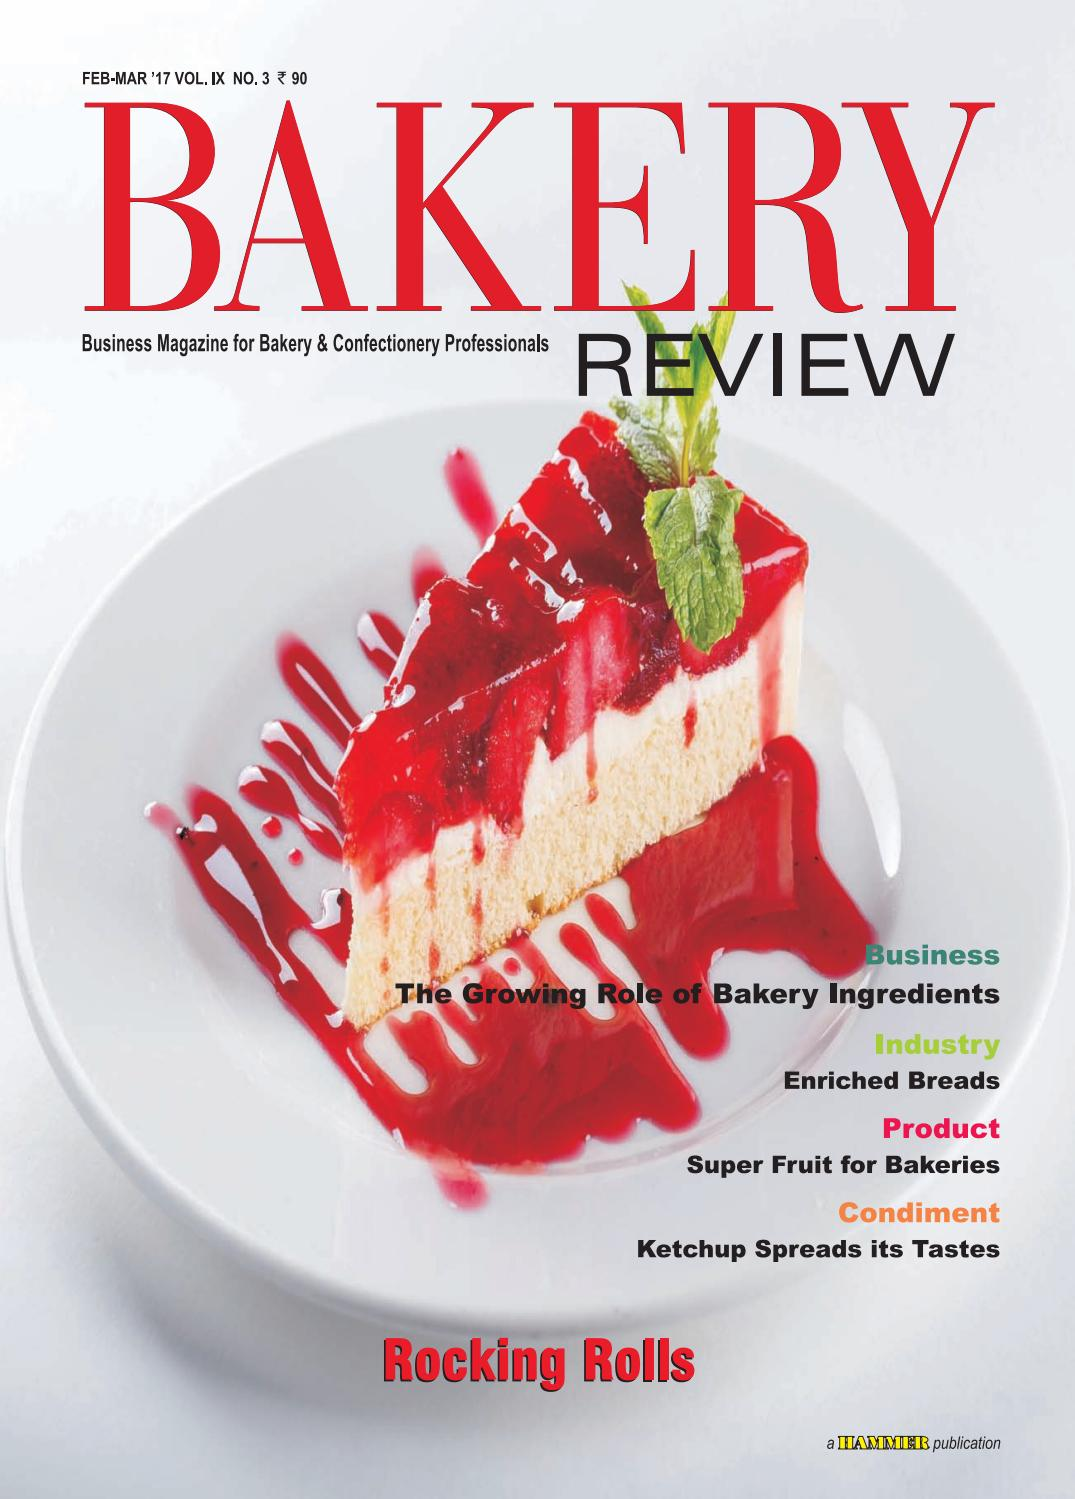 Bakery Review (Feb-Mar 17) by Bakery Review - issuu